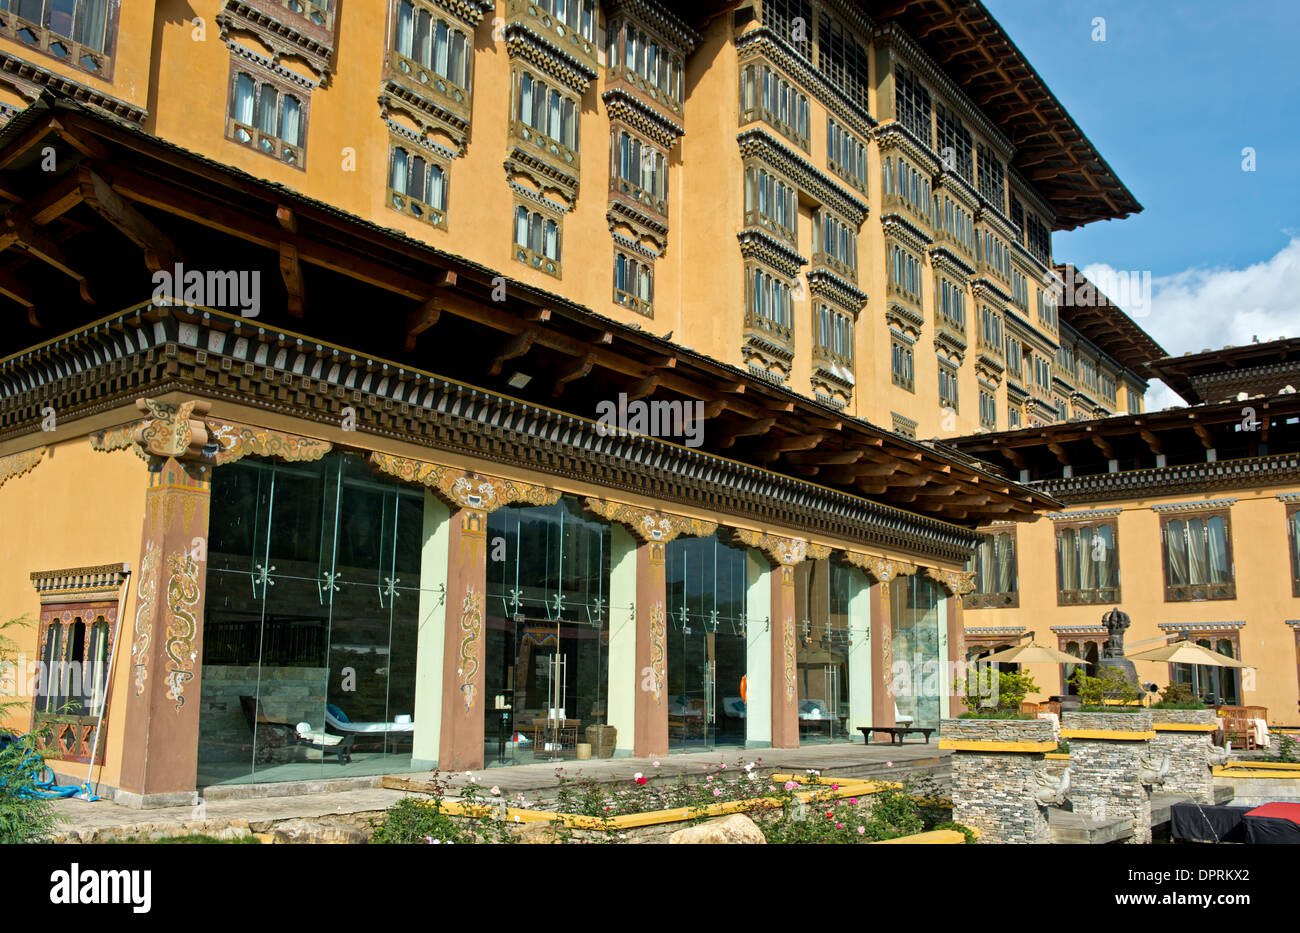 Hôtel Taj Tashi dans une architecture traditionnelle, Thimphu, Bhoutan Photo Stock